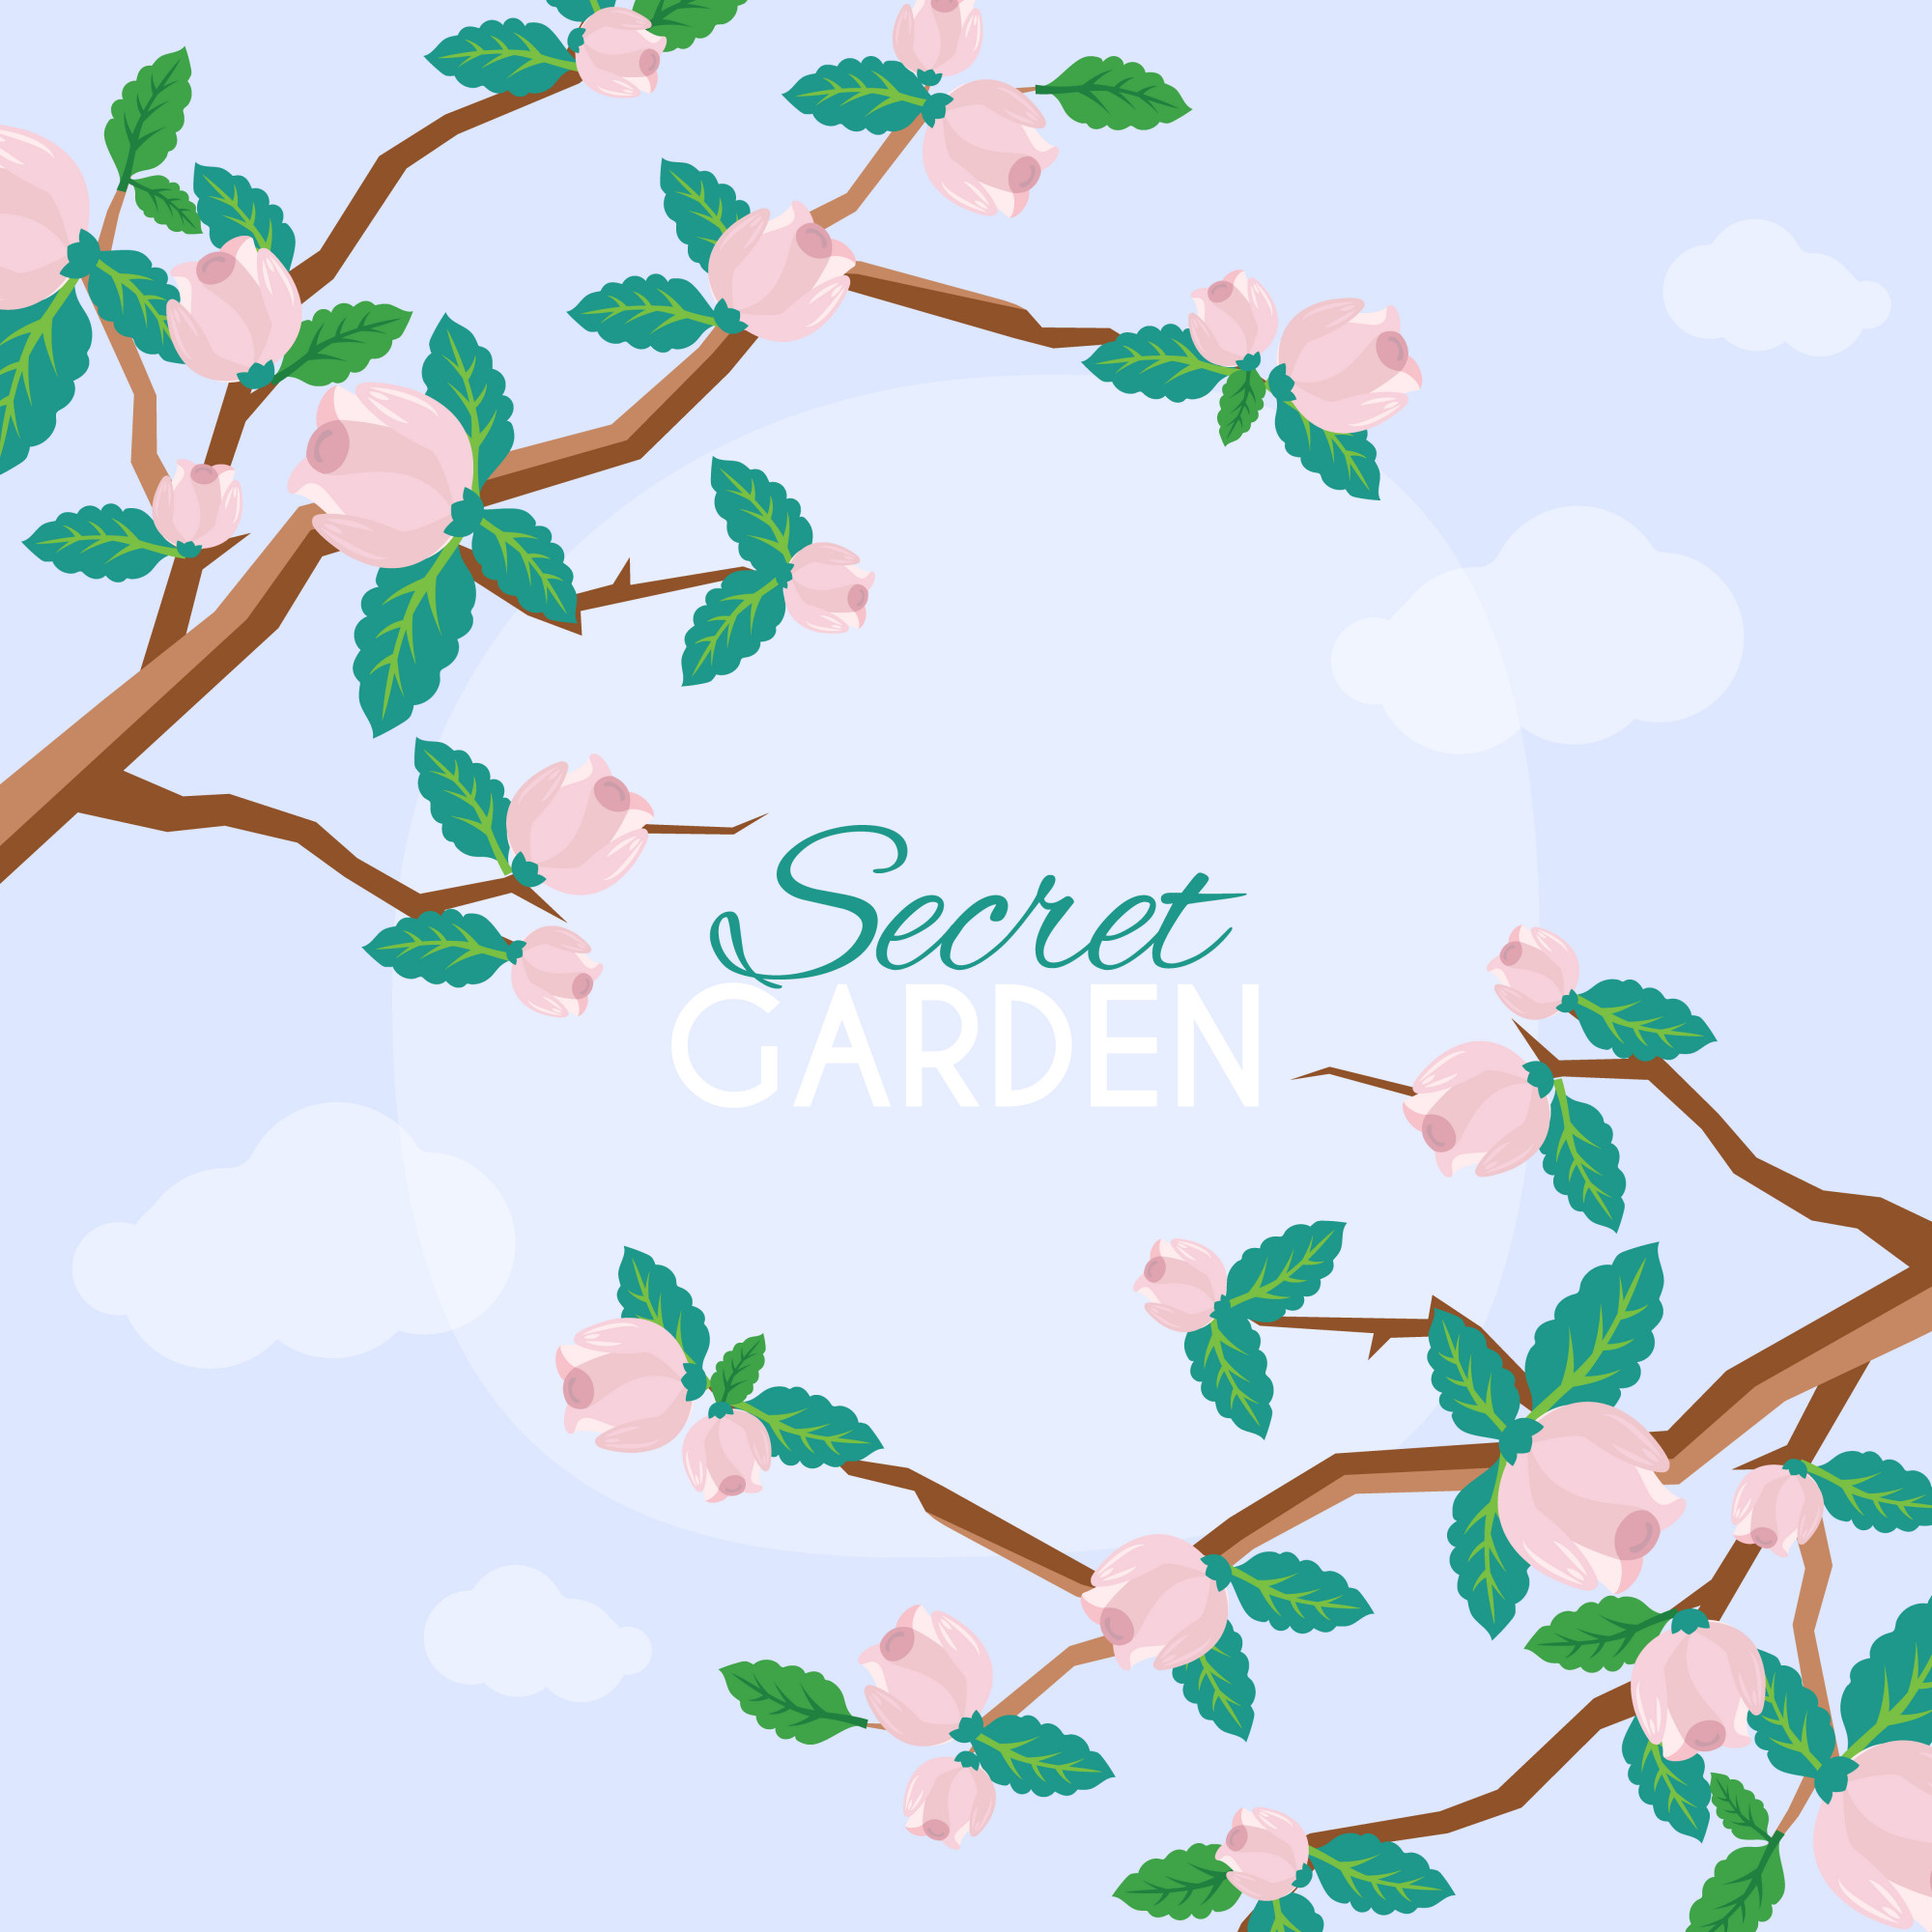 Cute background with cherry blossom flowers